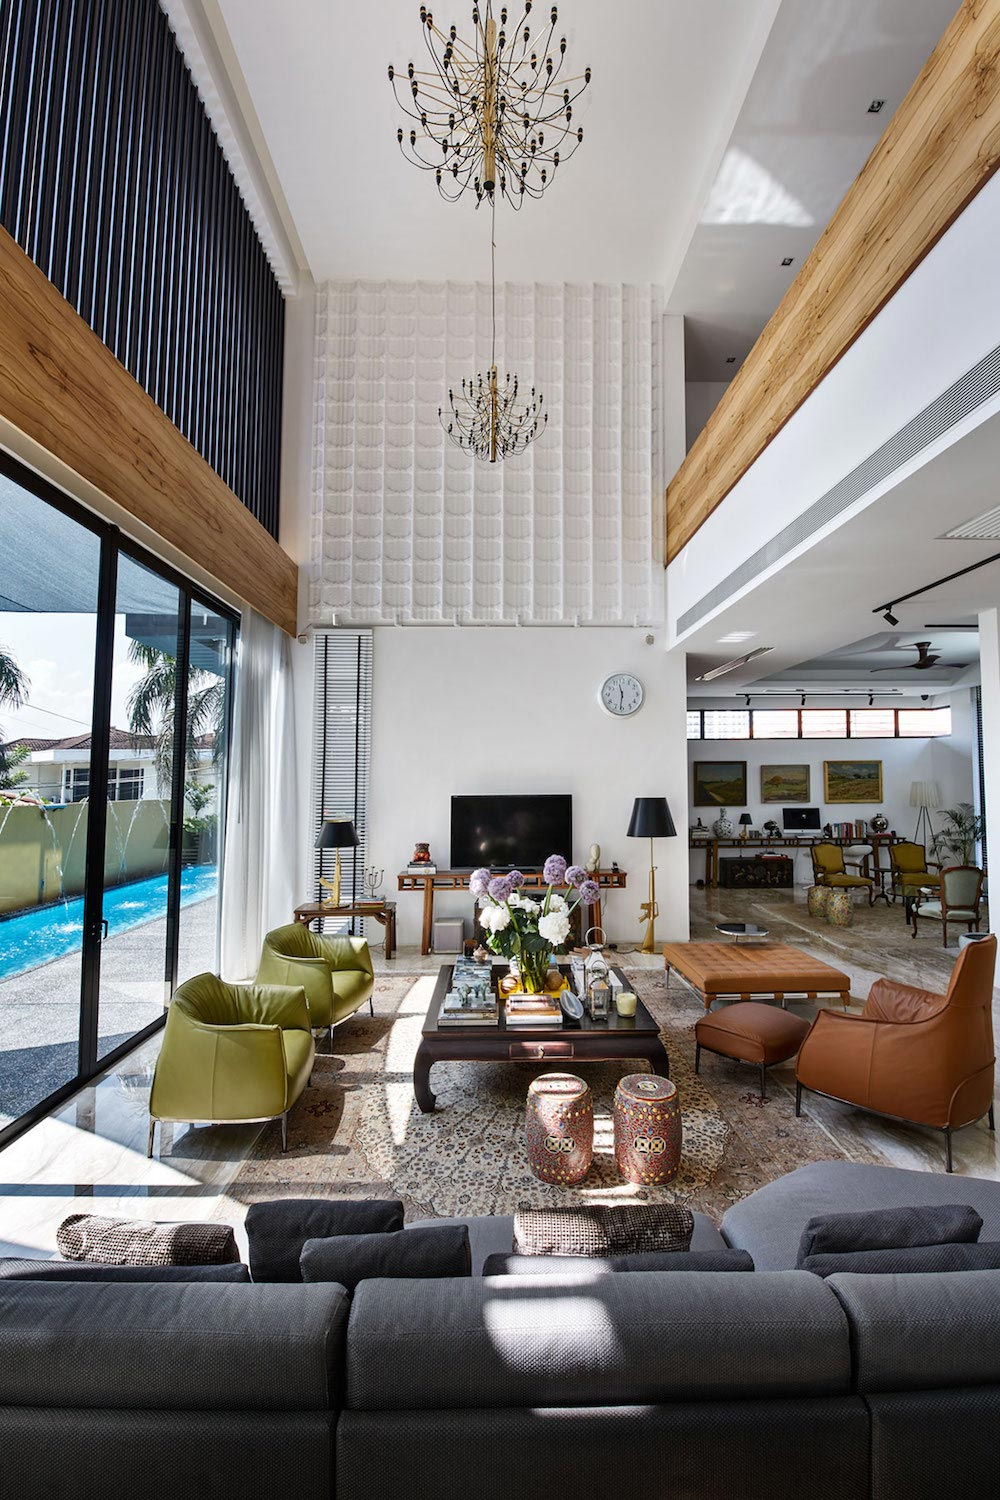 A Bungalow Is Completely Redesigned Into A Contemporary New Squarish Structure Caandesign Architecture And Home Design Blog